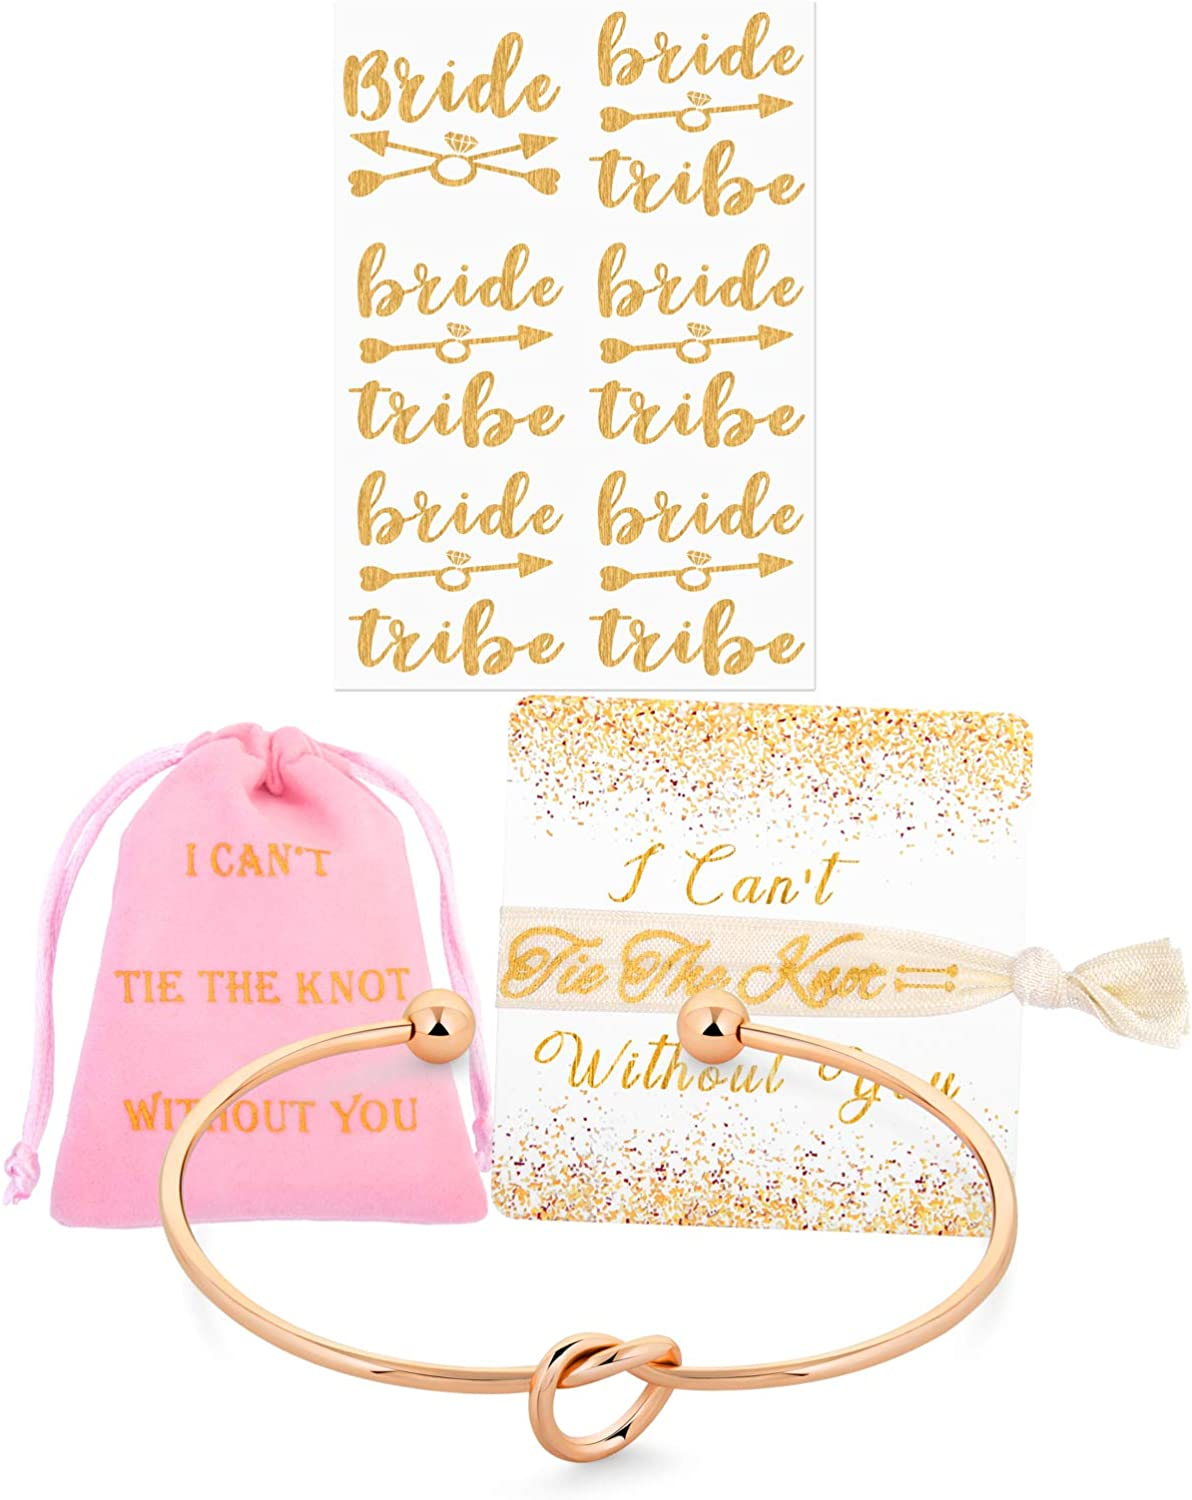 Bridesmaid Gifts I Can't...